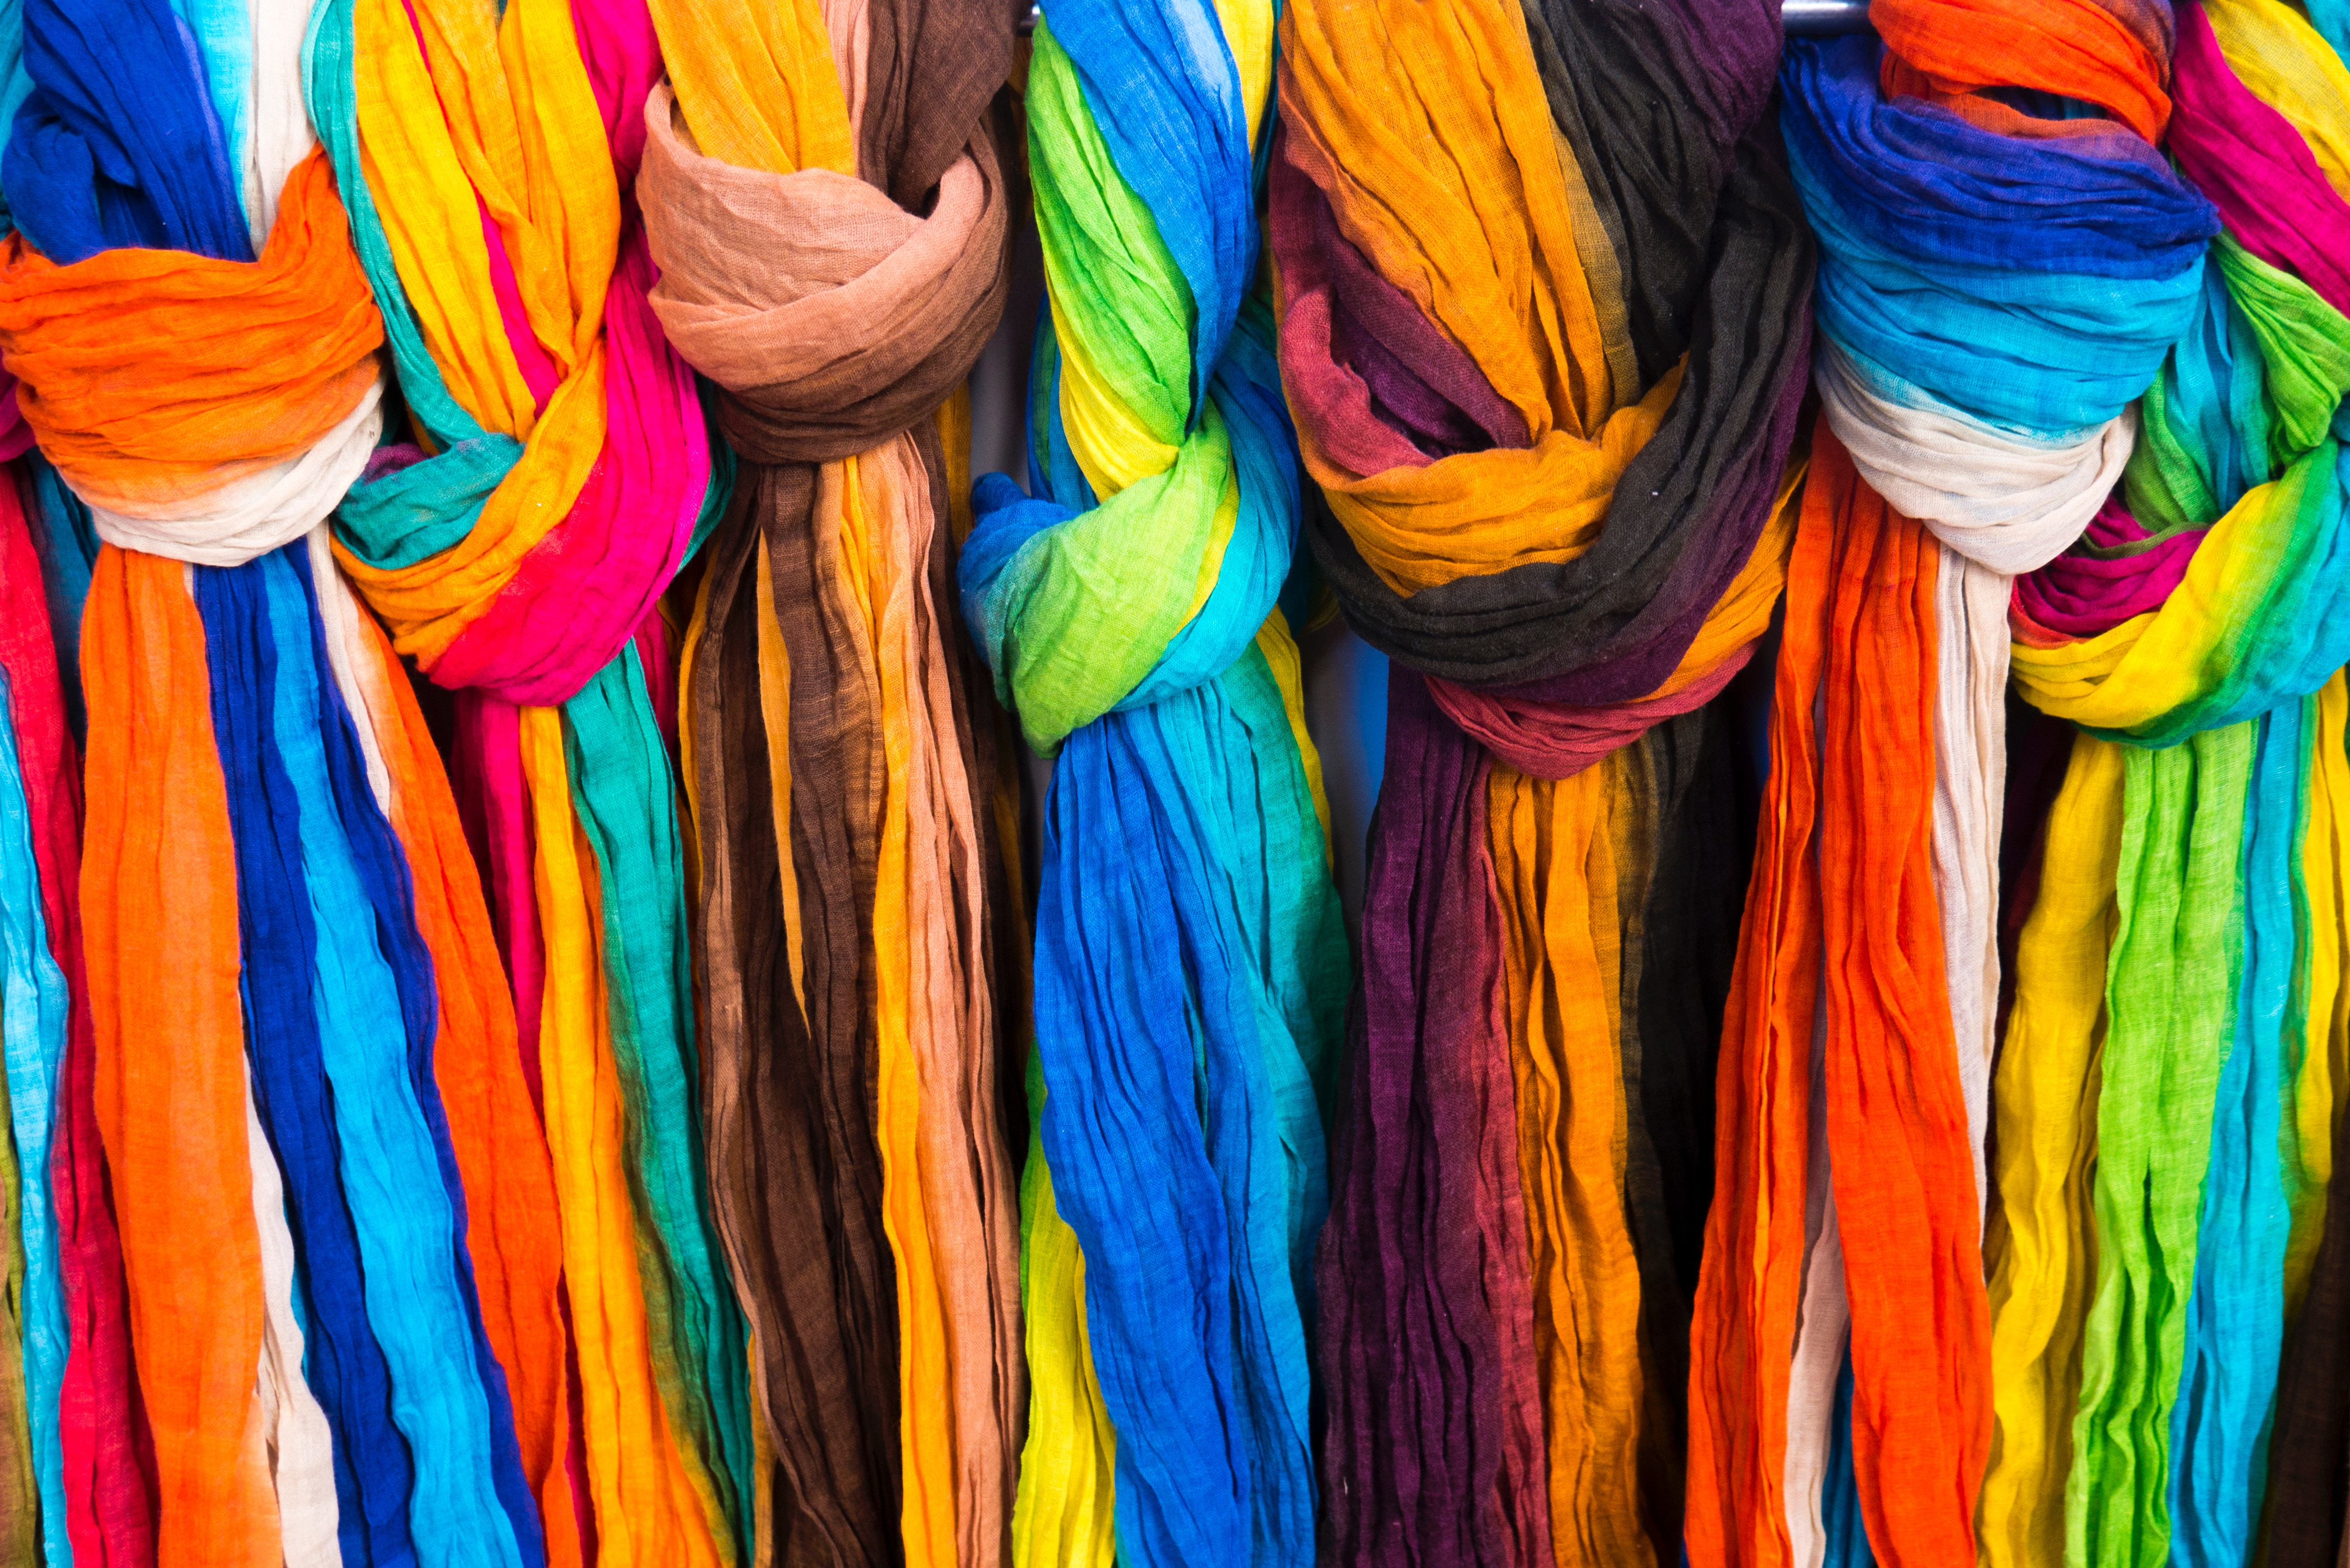 textile and garment recycling